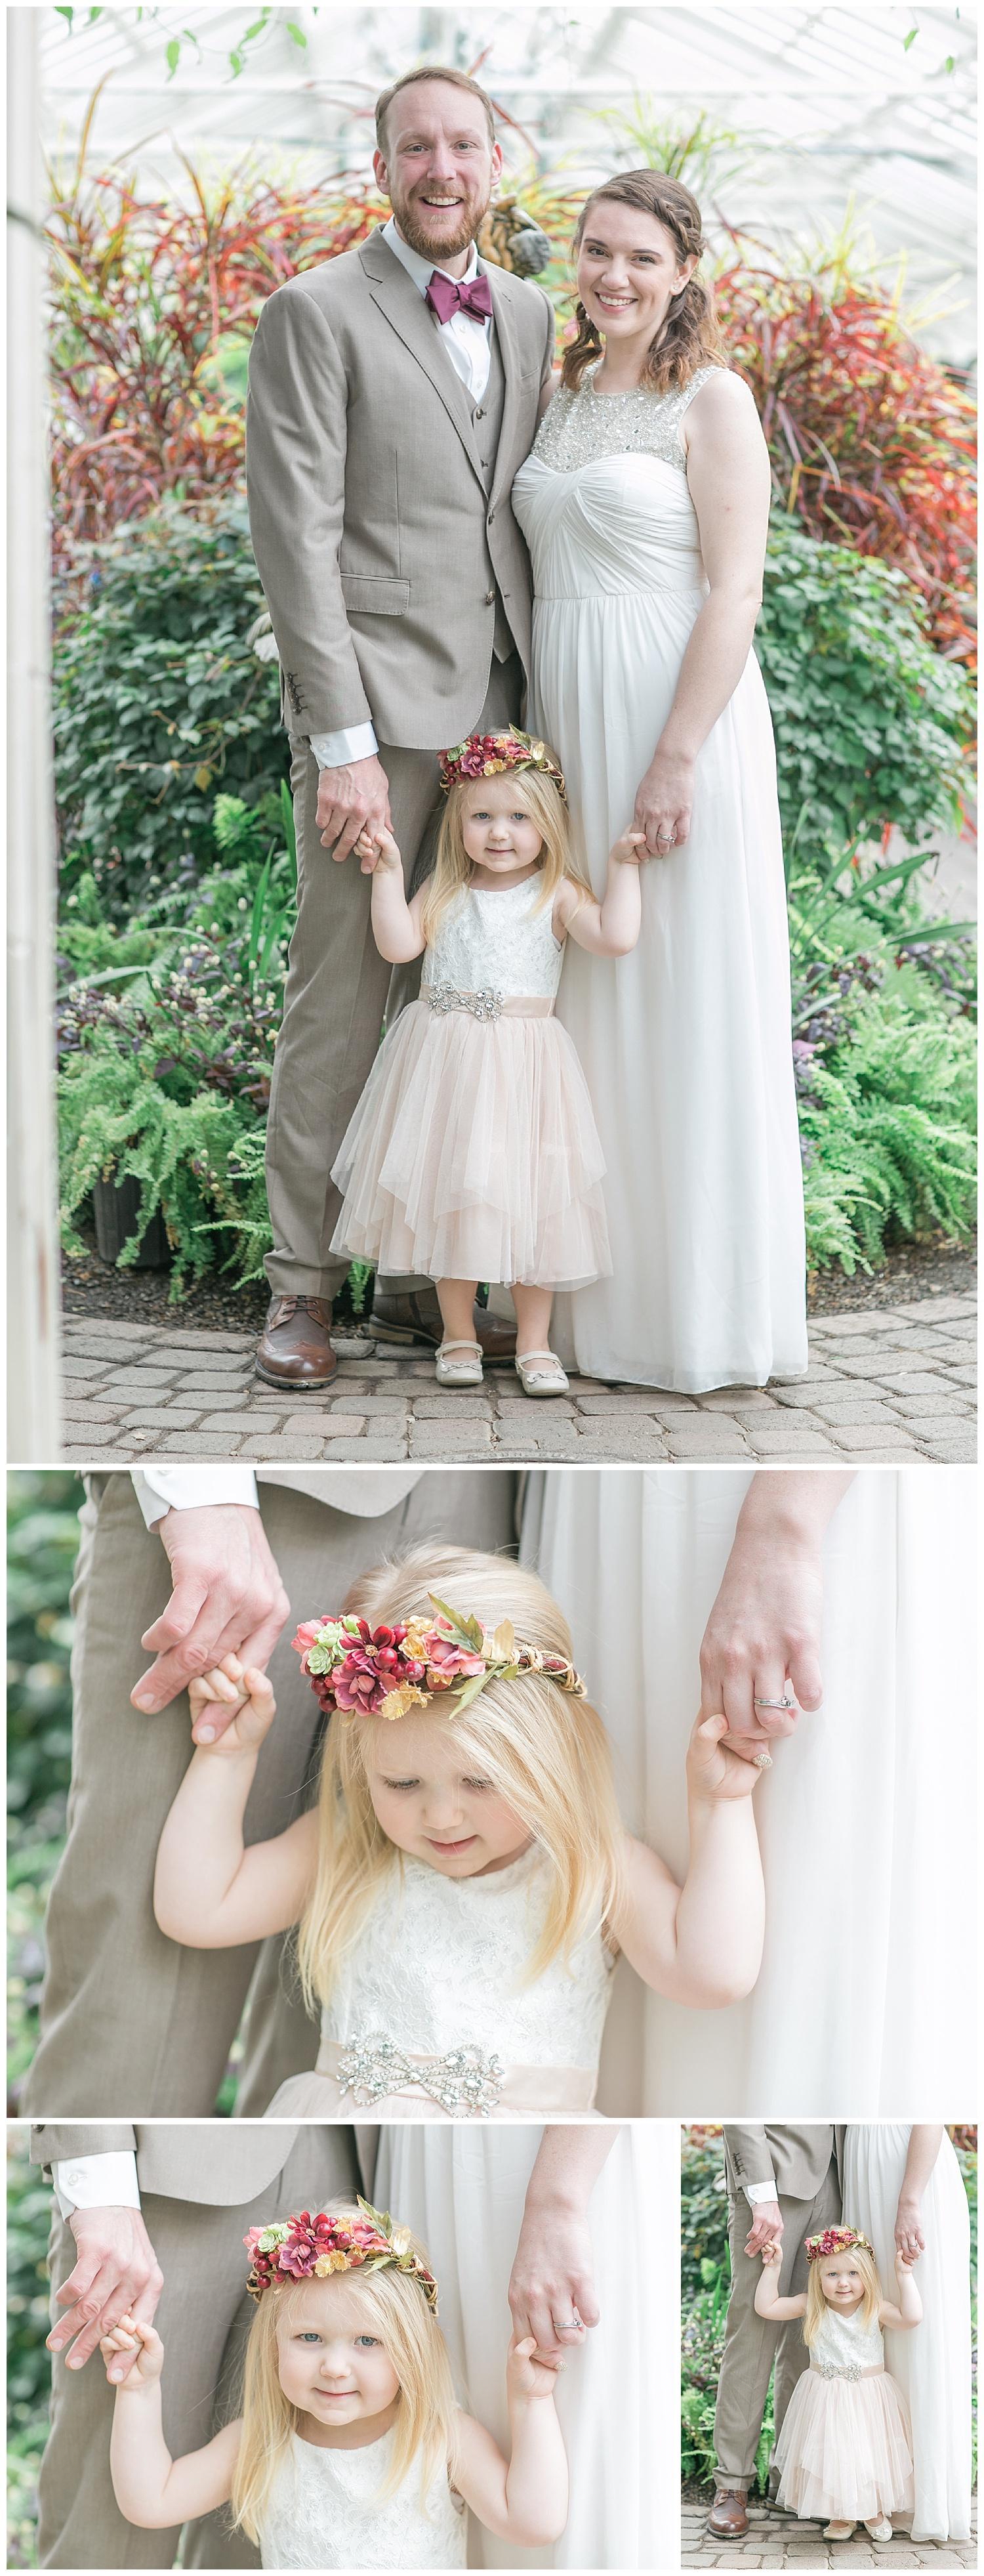 Buffalo Botanical gardens wedding - Buffalo NY Lass and Beau 7.jpg